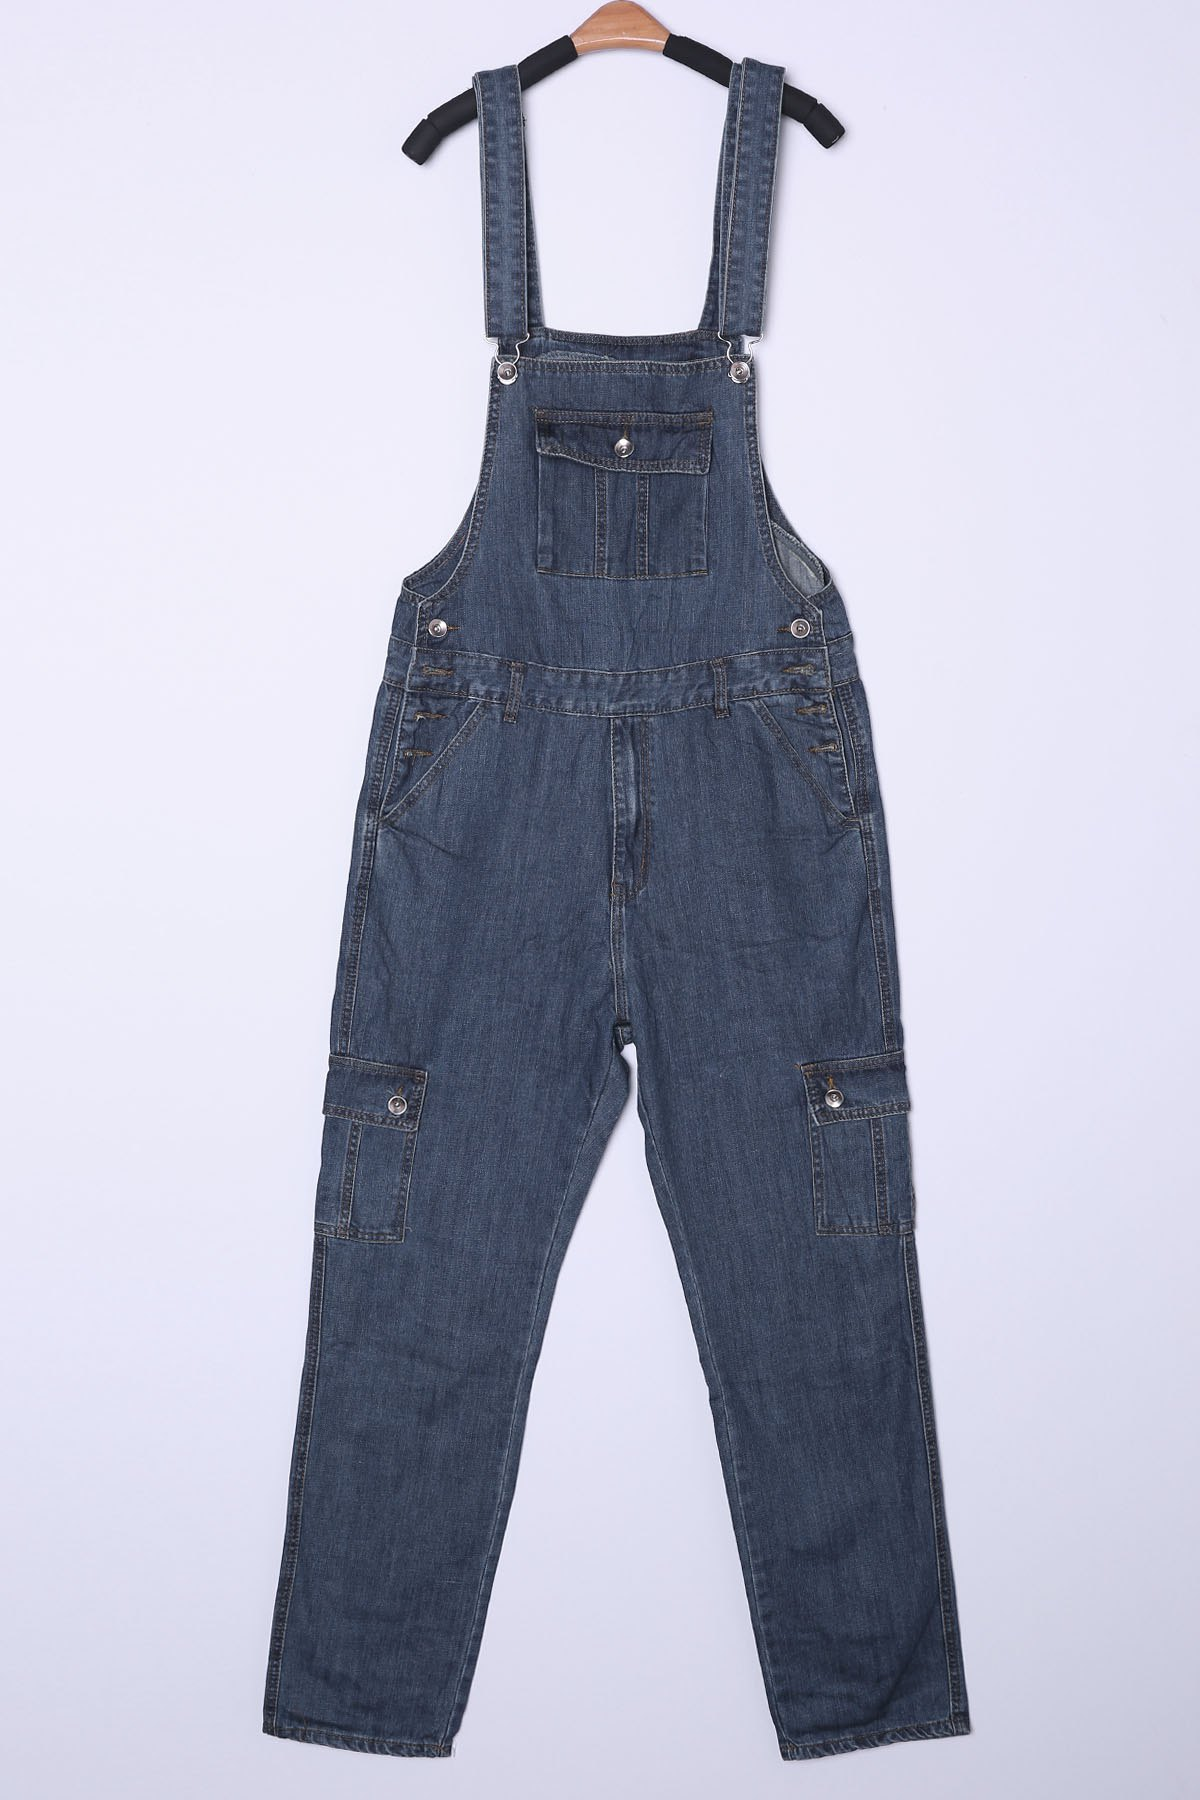 Plus Size Loose Fit Straight Leg Stereo Flap Pocket Zipper Fly Men's Denim Overalls - DENIM BLUE XL